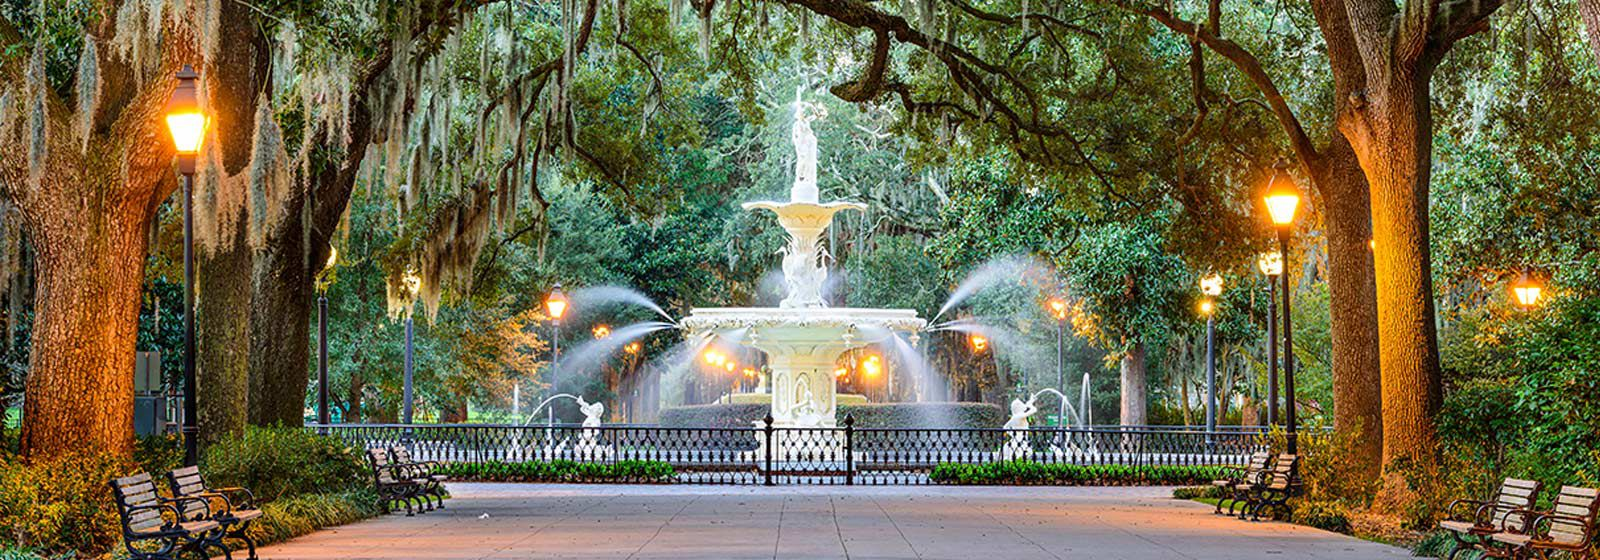 IHG's guide to historic Savannah